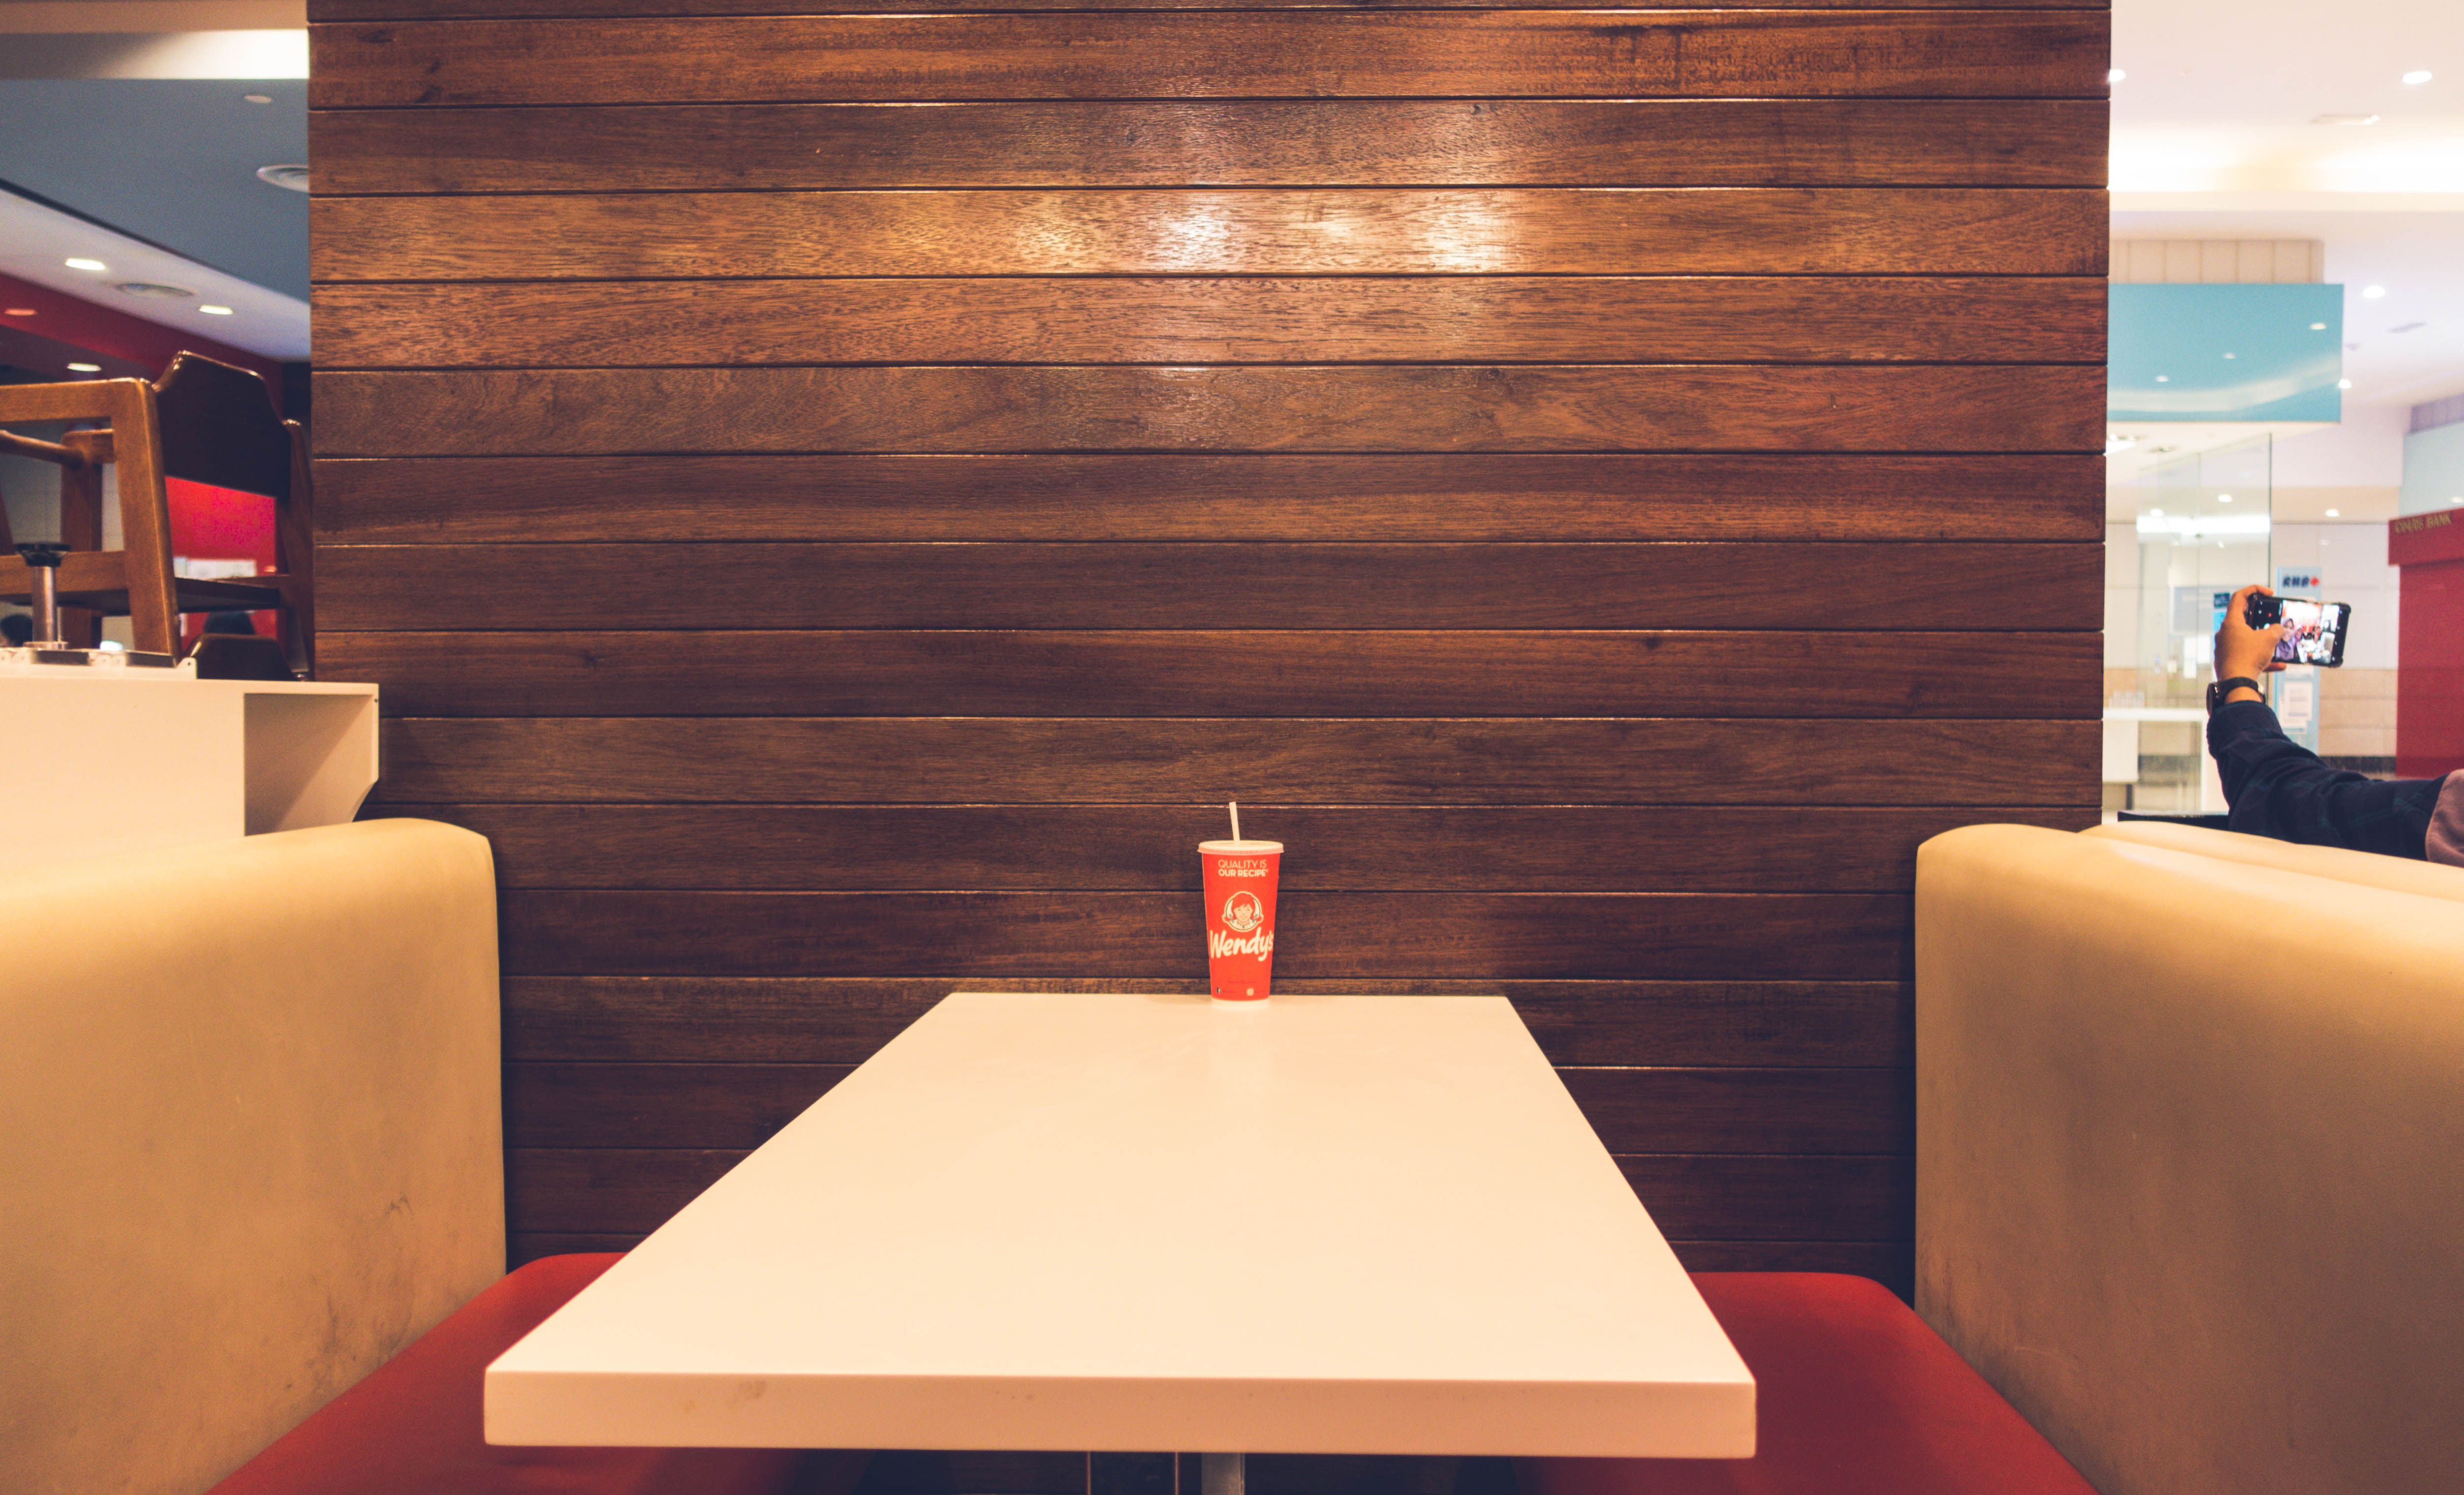 Red Disposable Cup on White Table, Indoors, Wooden, Taking photo, Table, HQ Photo